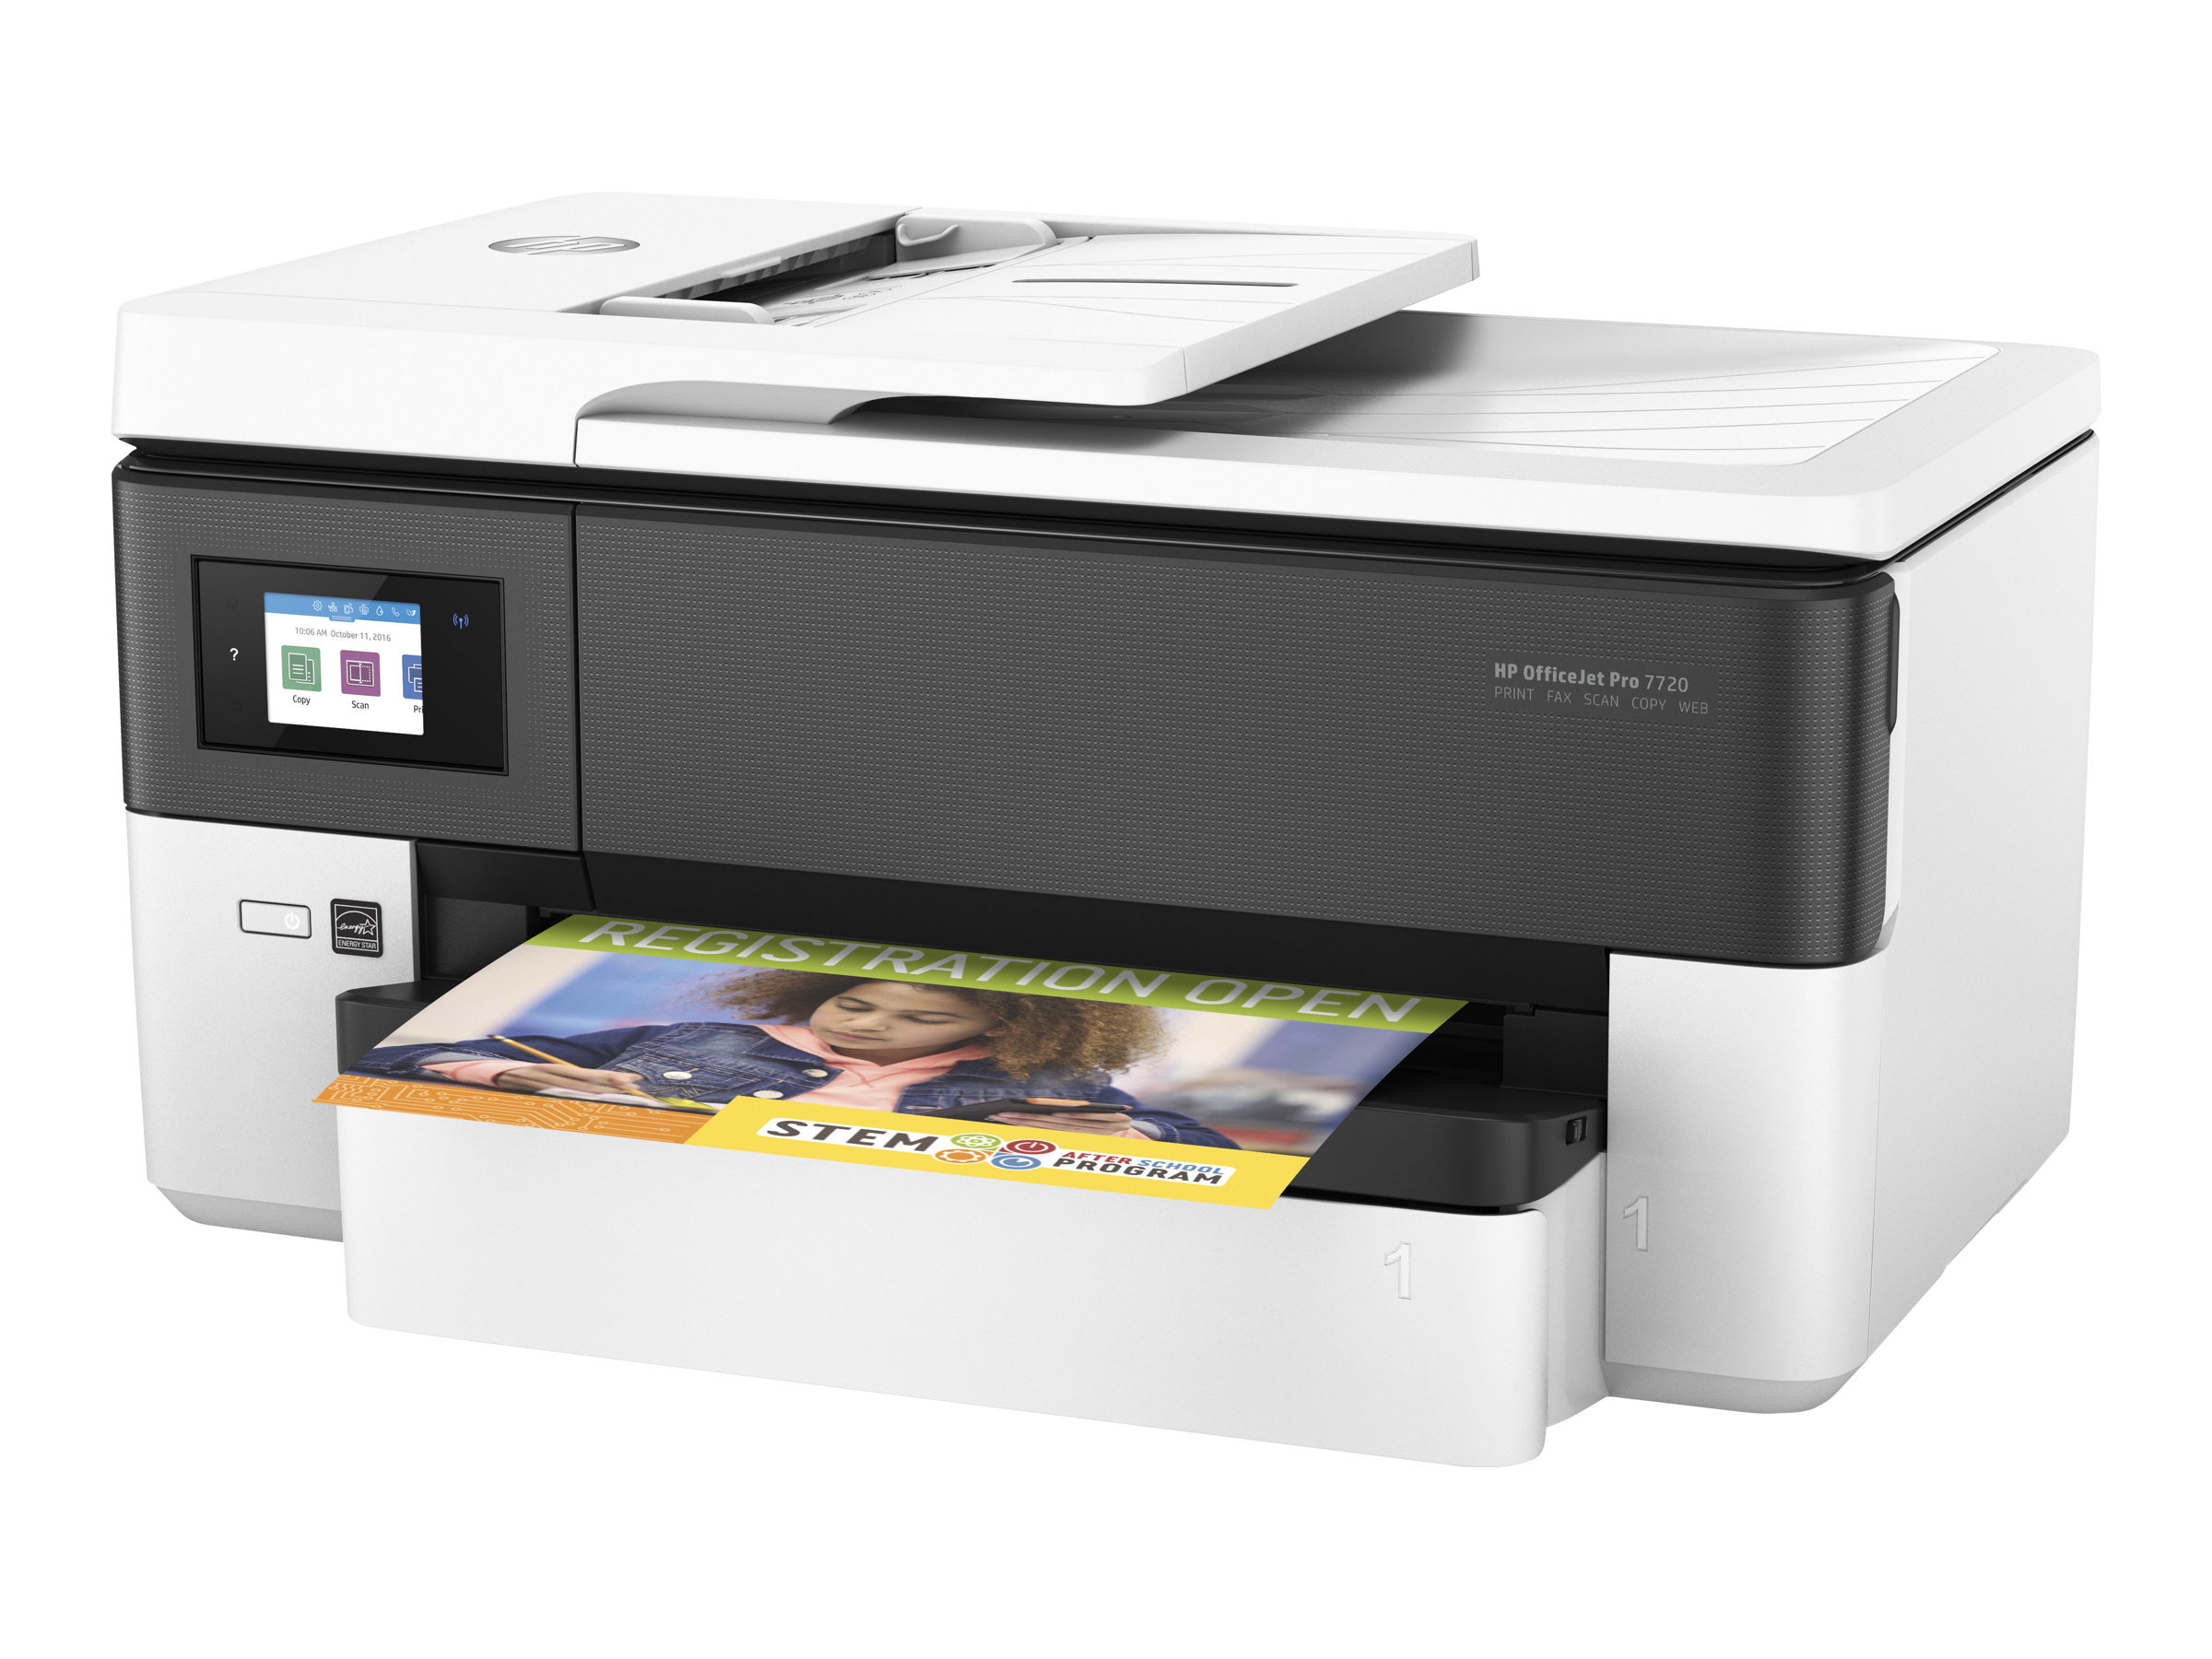 HP Officejet Pro 7720 Wide Format All-in-One - Multifunktionsdrucker - Farbe - Tintenstrahl - 216 x 356 mm (Original)